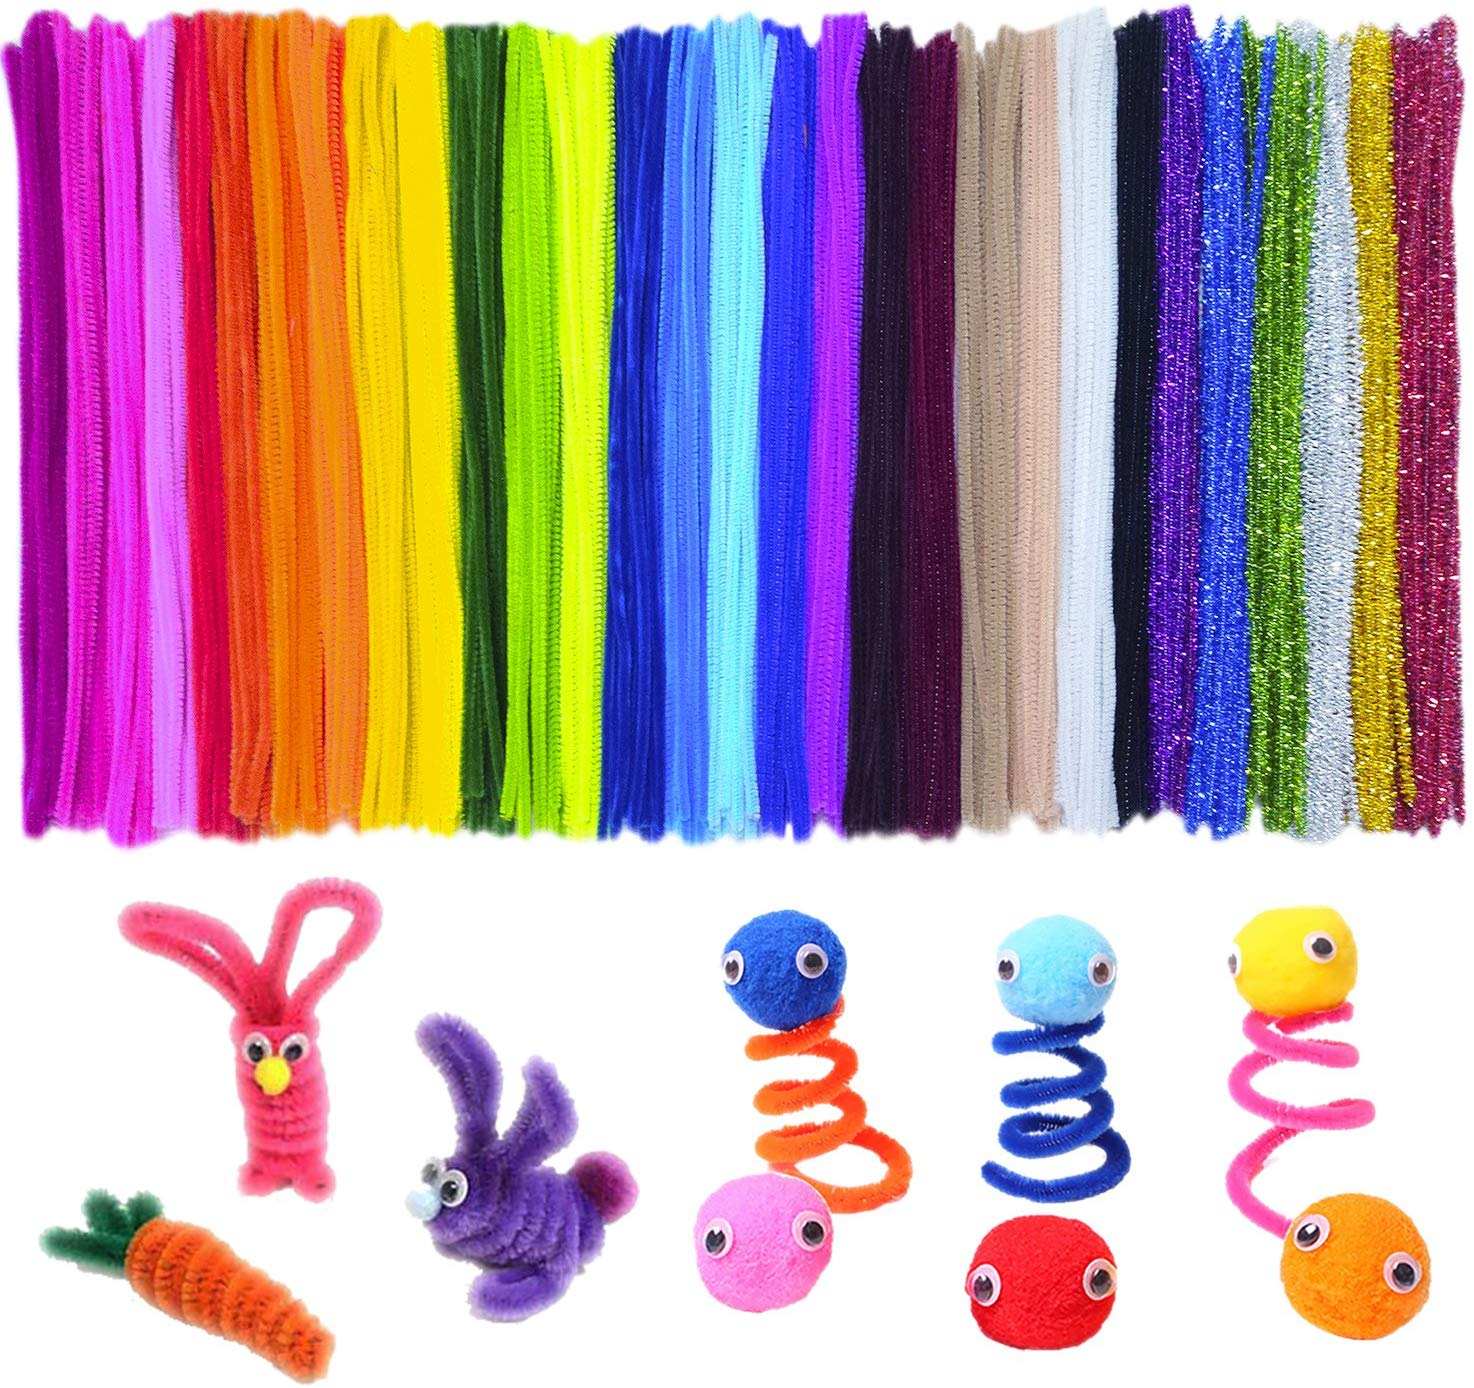 Acerich 30 Colors Pipe Cleaners, 600-Count